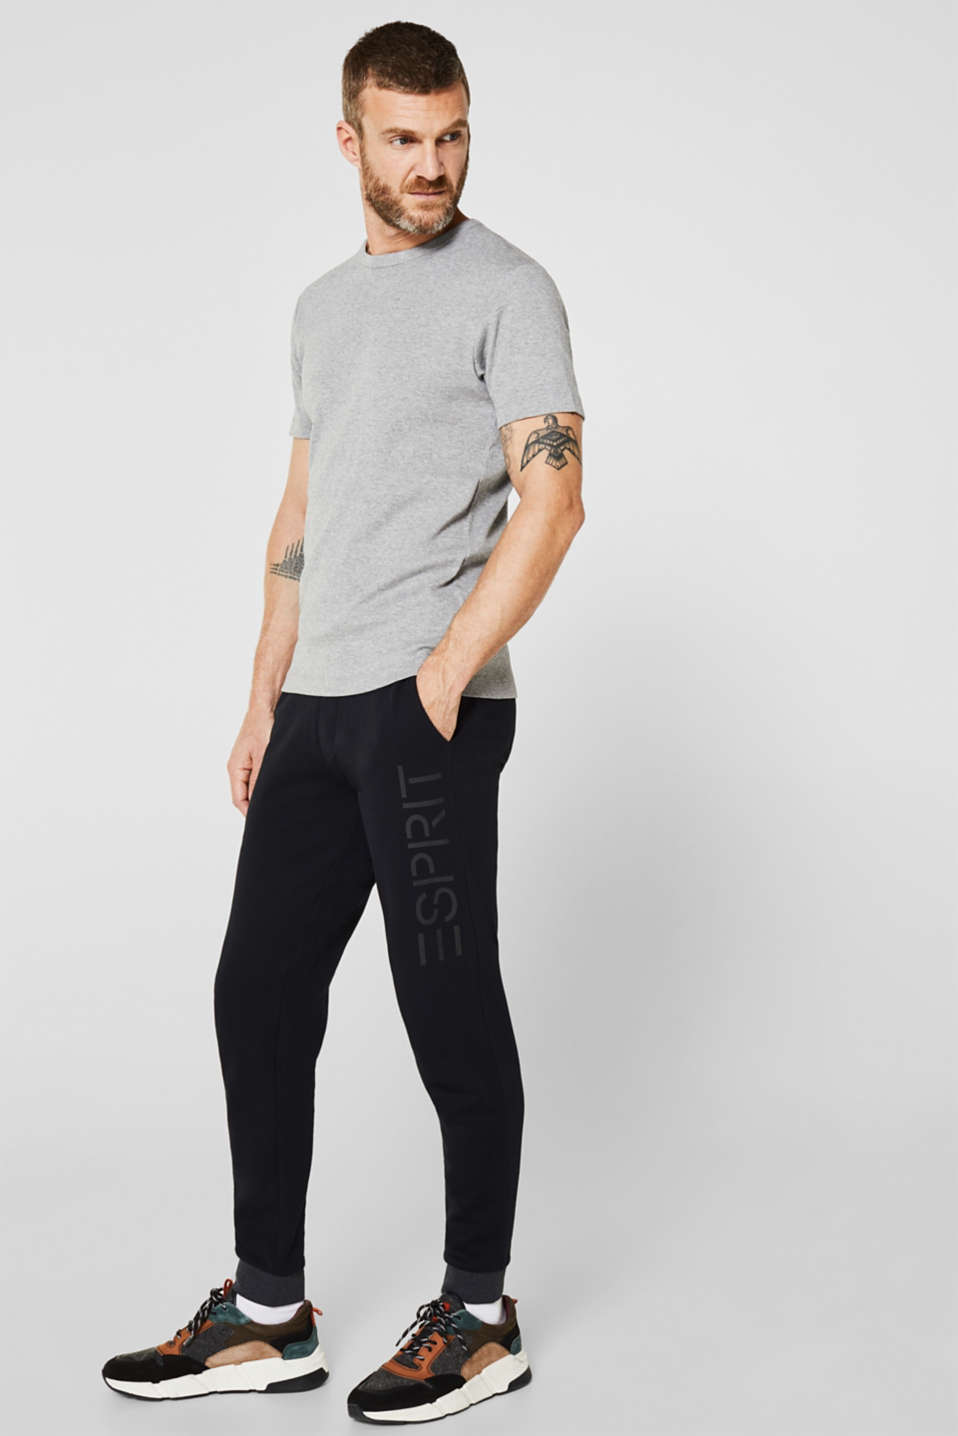 Ribbed T-shirt in blended cotton, MEDIUM GREY 5, detail image number 2